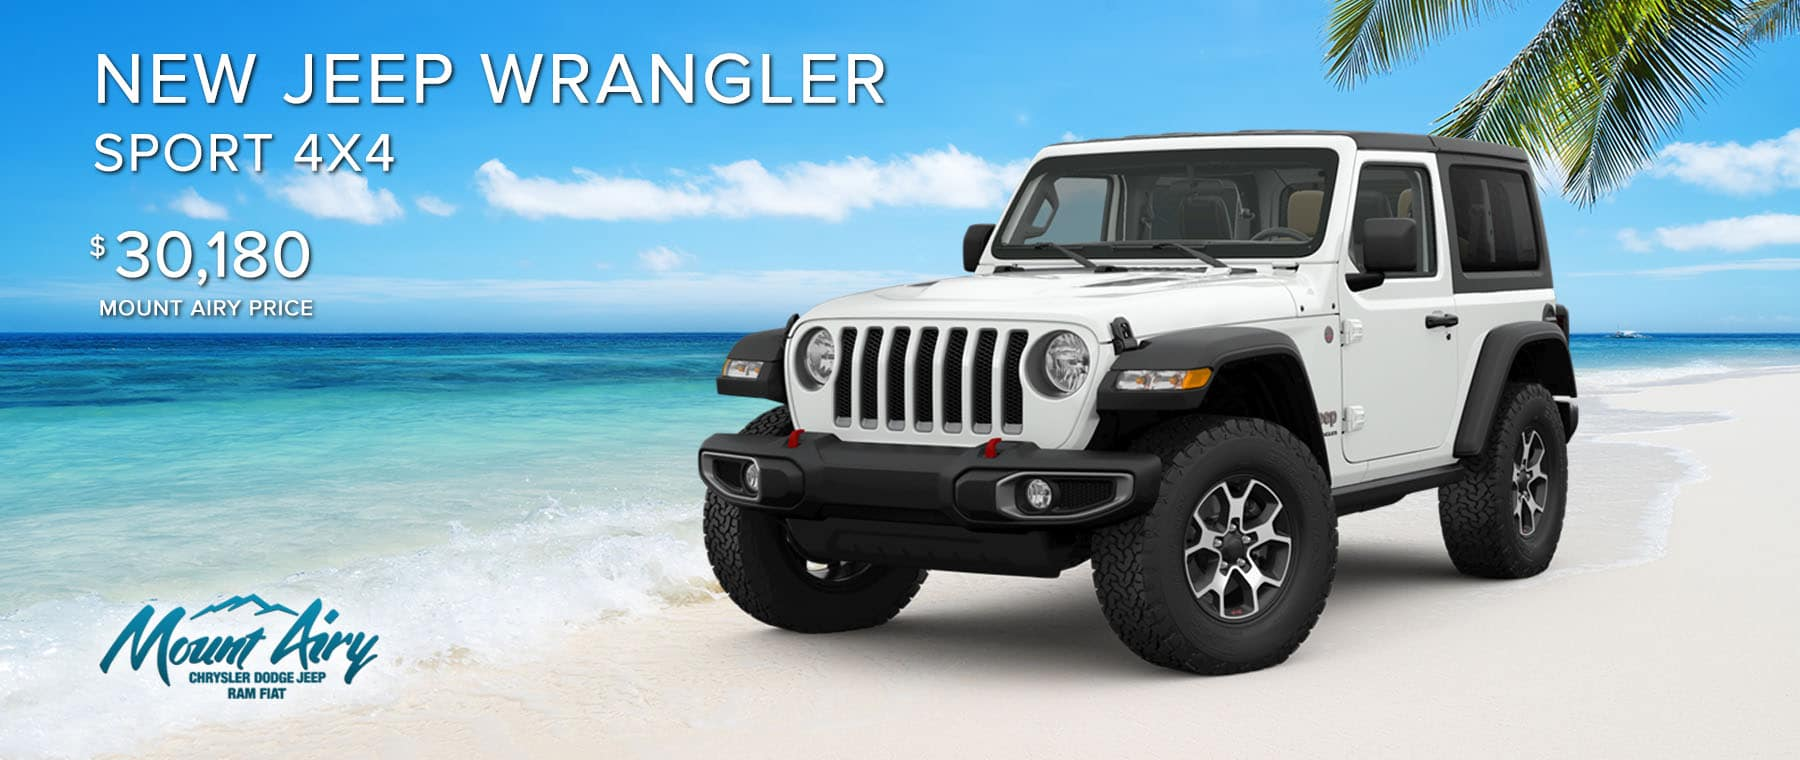 White New Jeep Wrangler on sale